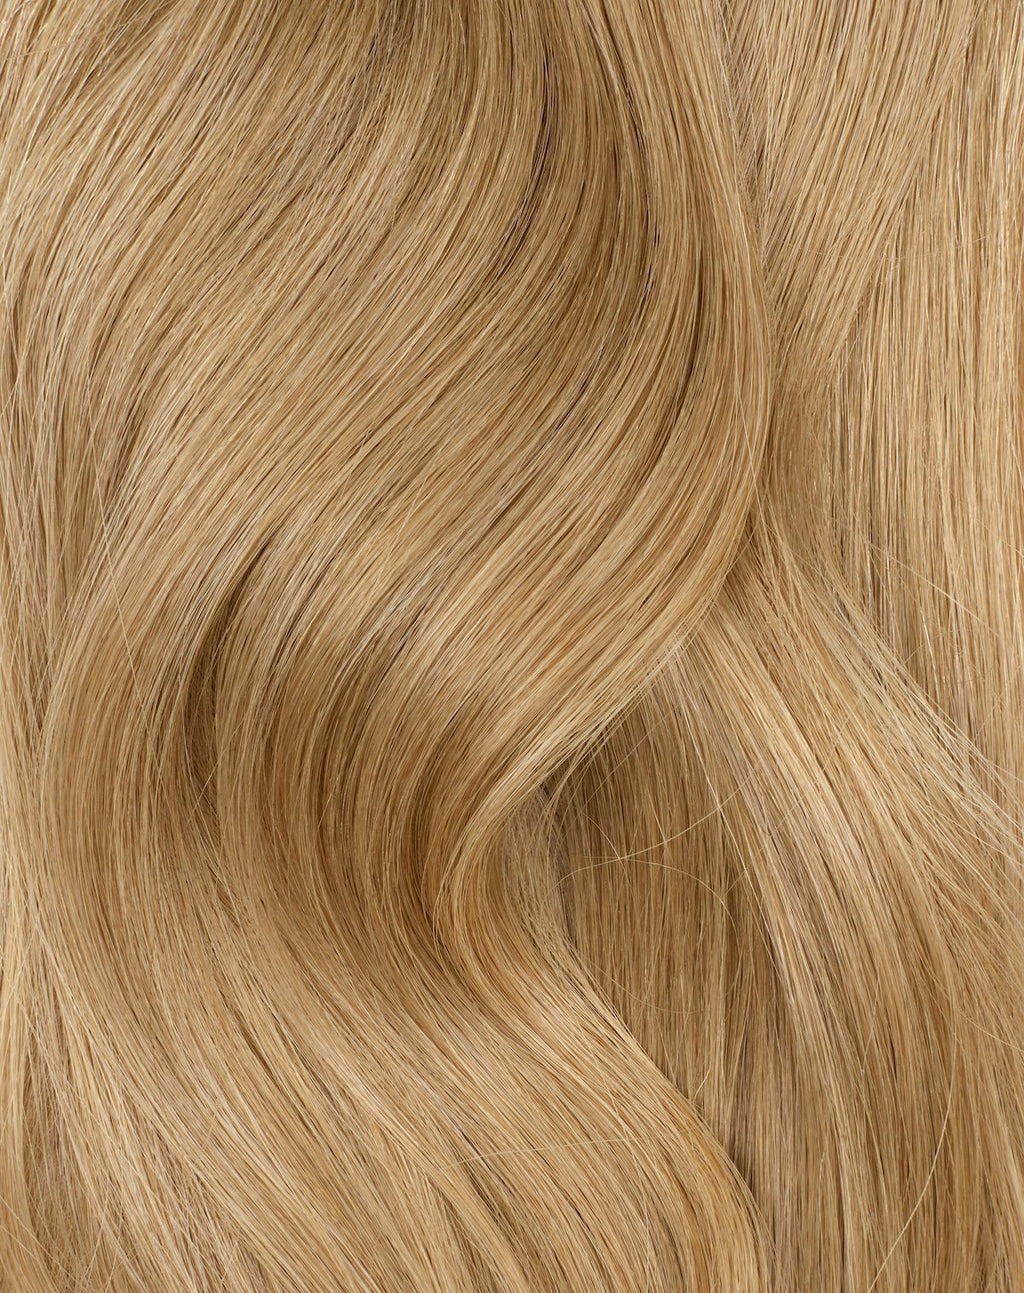 Highlight (Ash Brown #9 / Dirty Blonde #19C) Tape (50g)